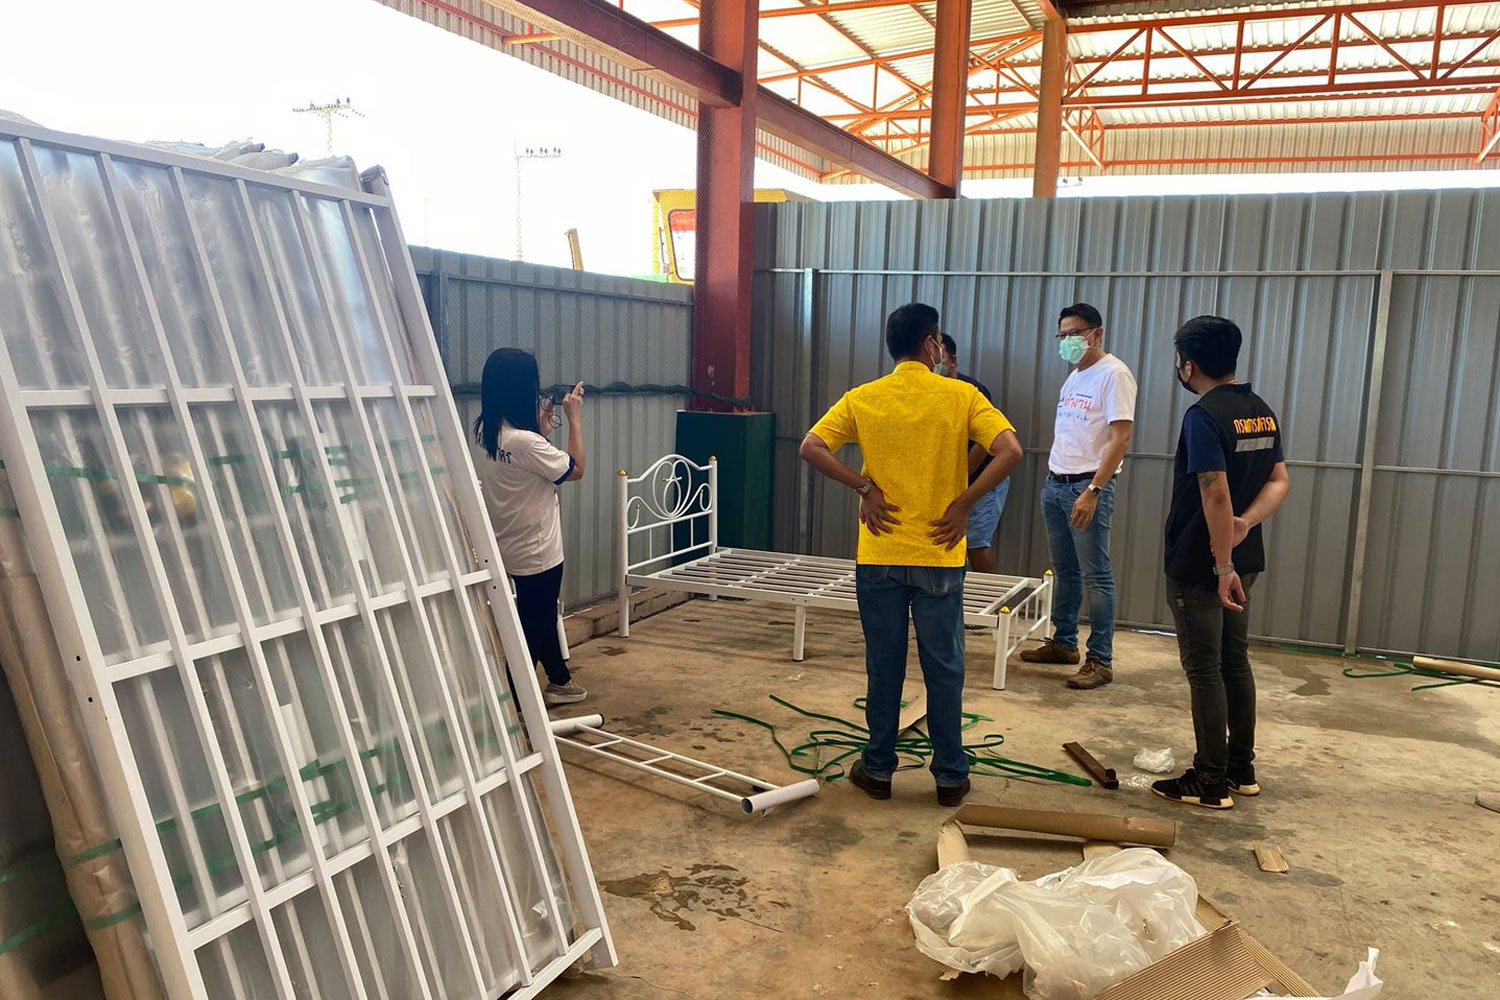 Workers set up another field hospital in Ban Phaeo district, Samut Sakhon province, as the province reports 544 new Covid-19 cases on Thursday. (Photo: Samut Sakhon provincial public relations Facebook page)